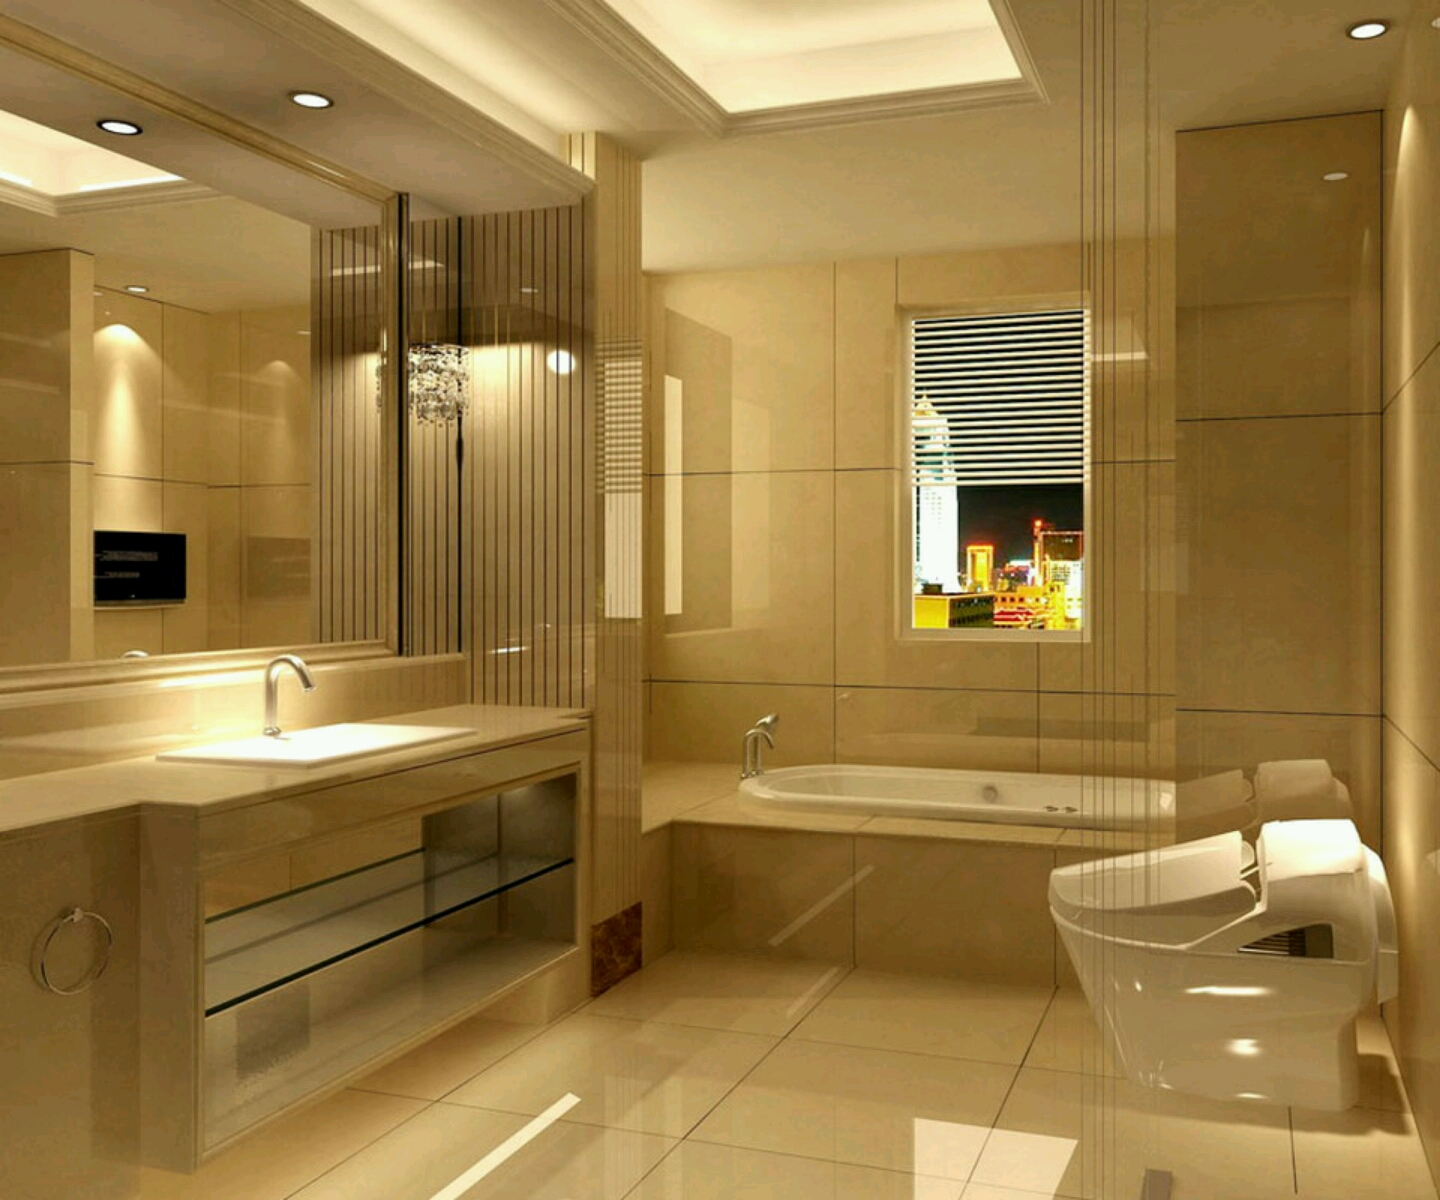 Modern bathrooms setting ideas furniture gallery for New style bathroom designs